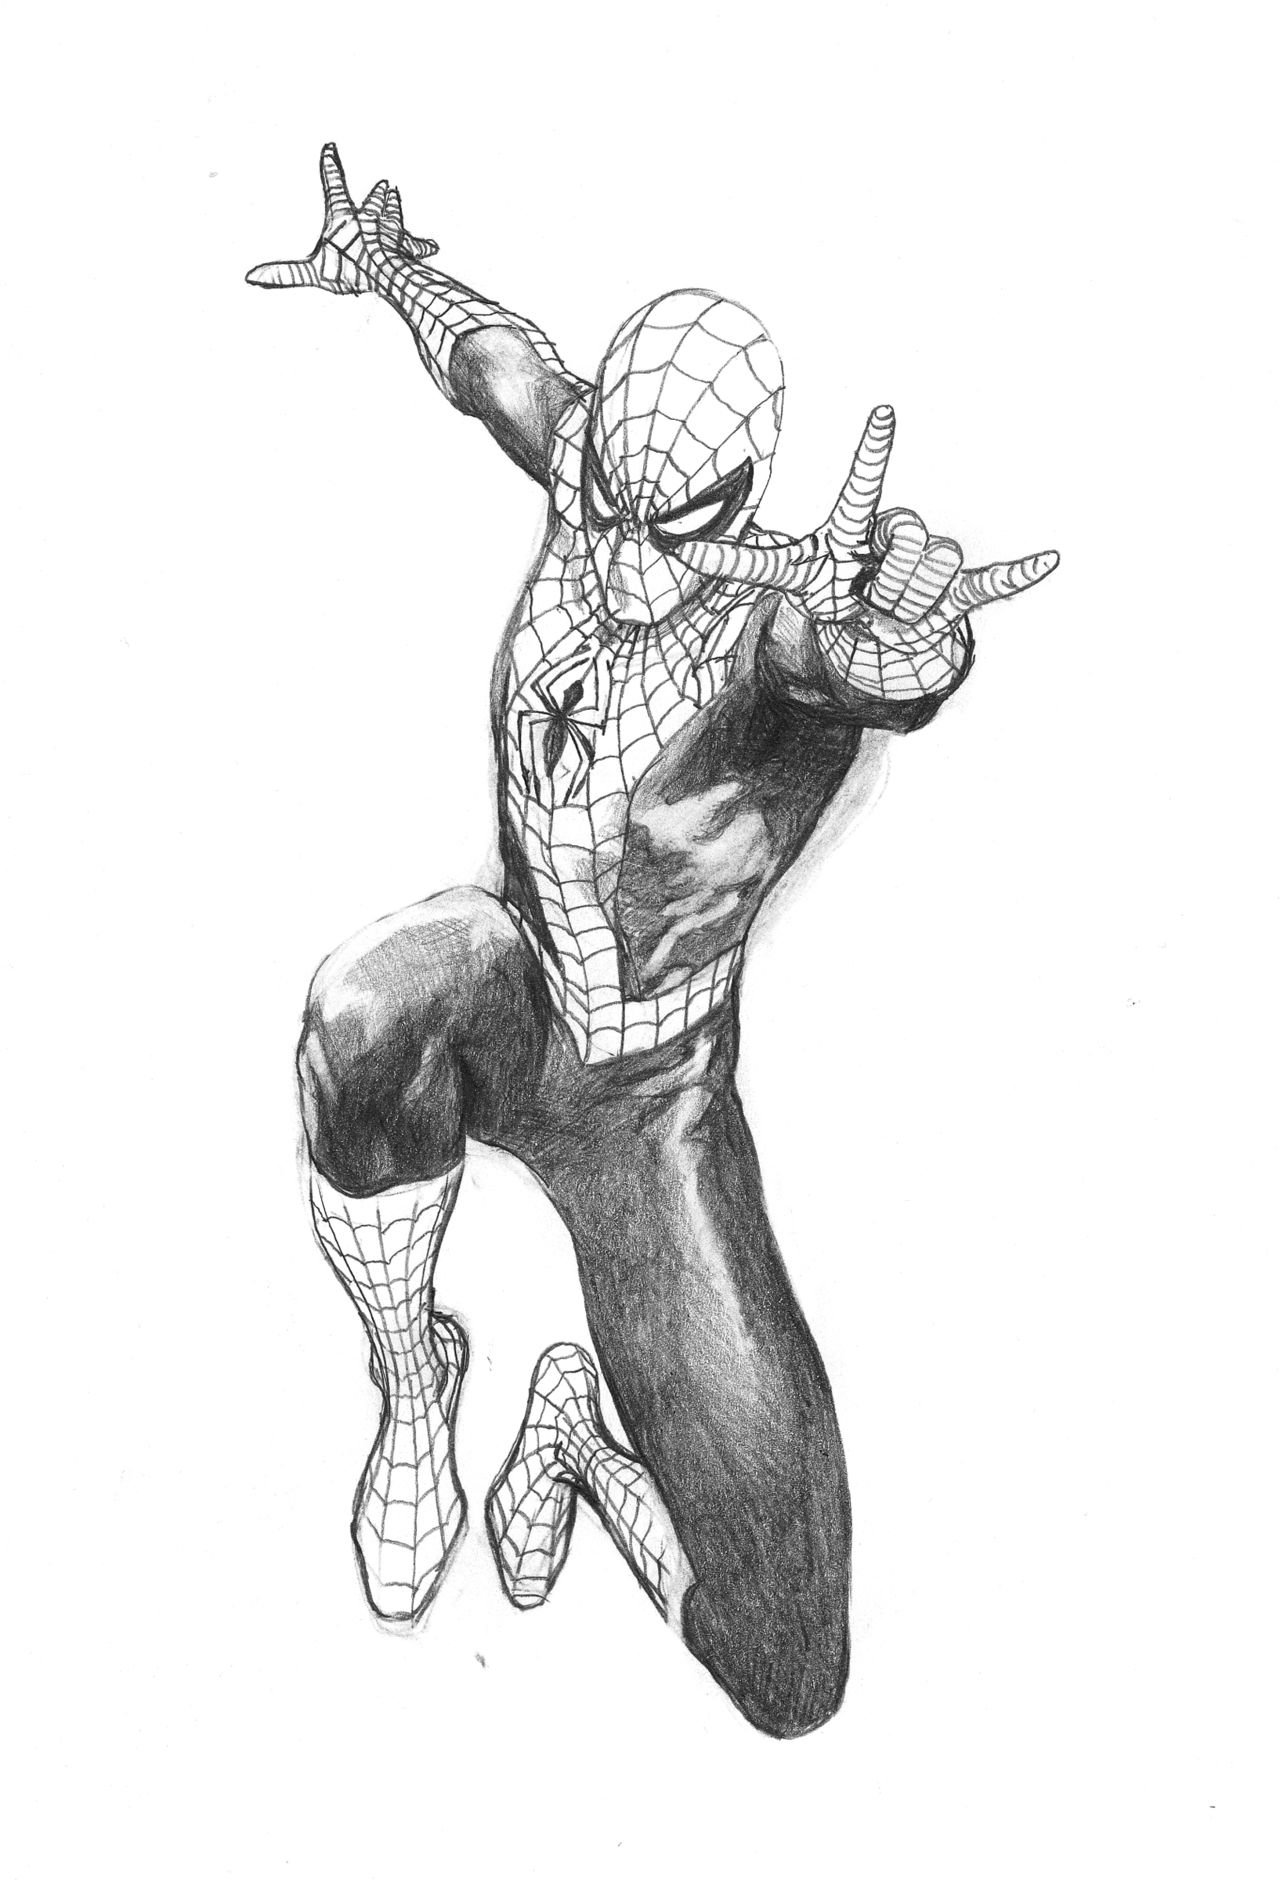 Part of an amazing spider man 50th anniversary variant cover rough by steve mcniven